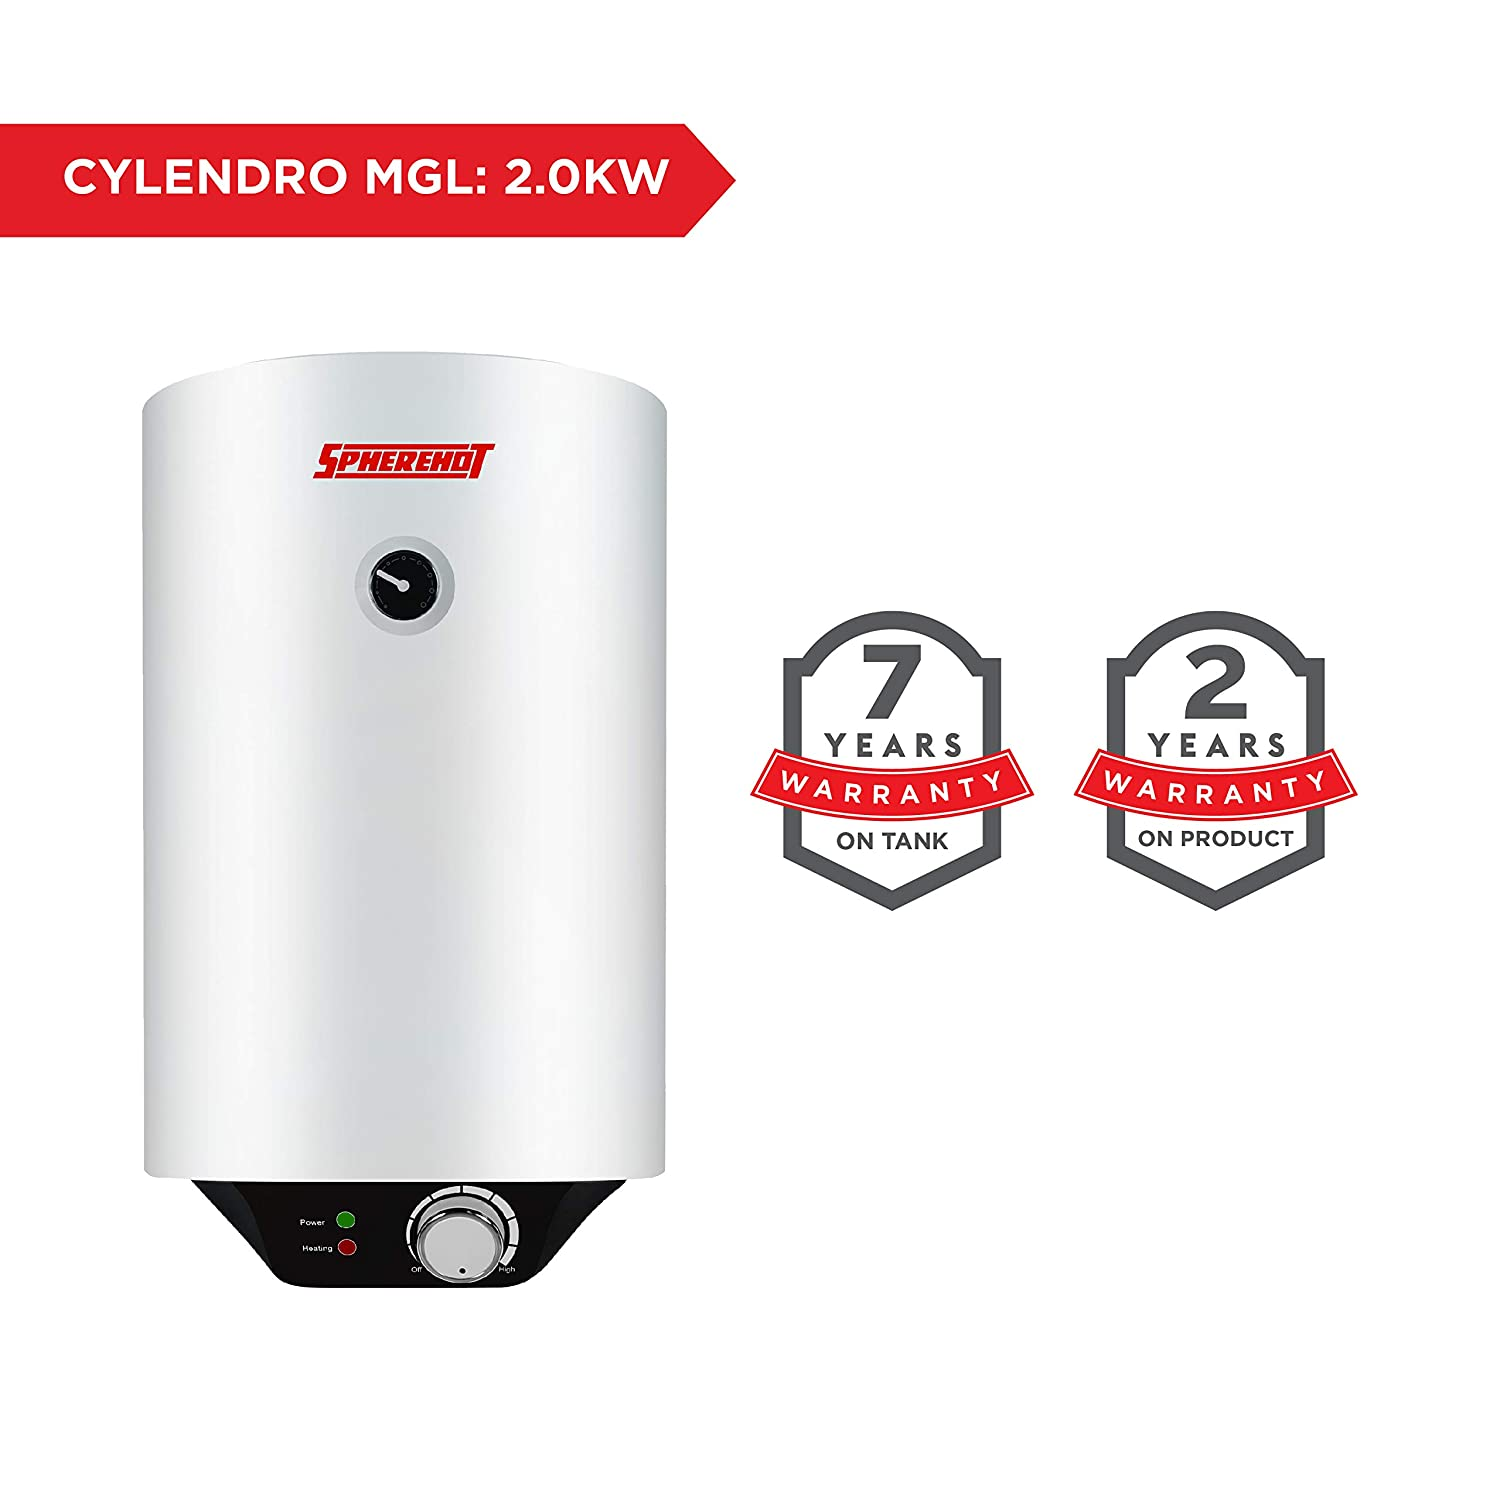 Spherehot 15L Cylendro Electric Metal GL WM Vertical, White